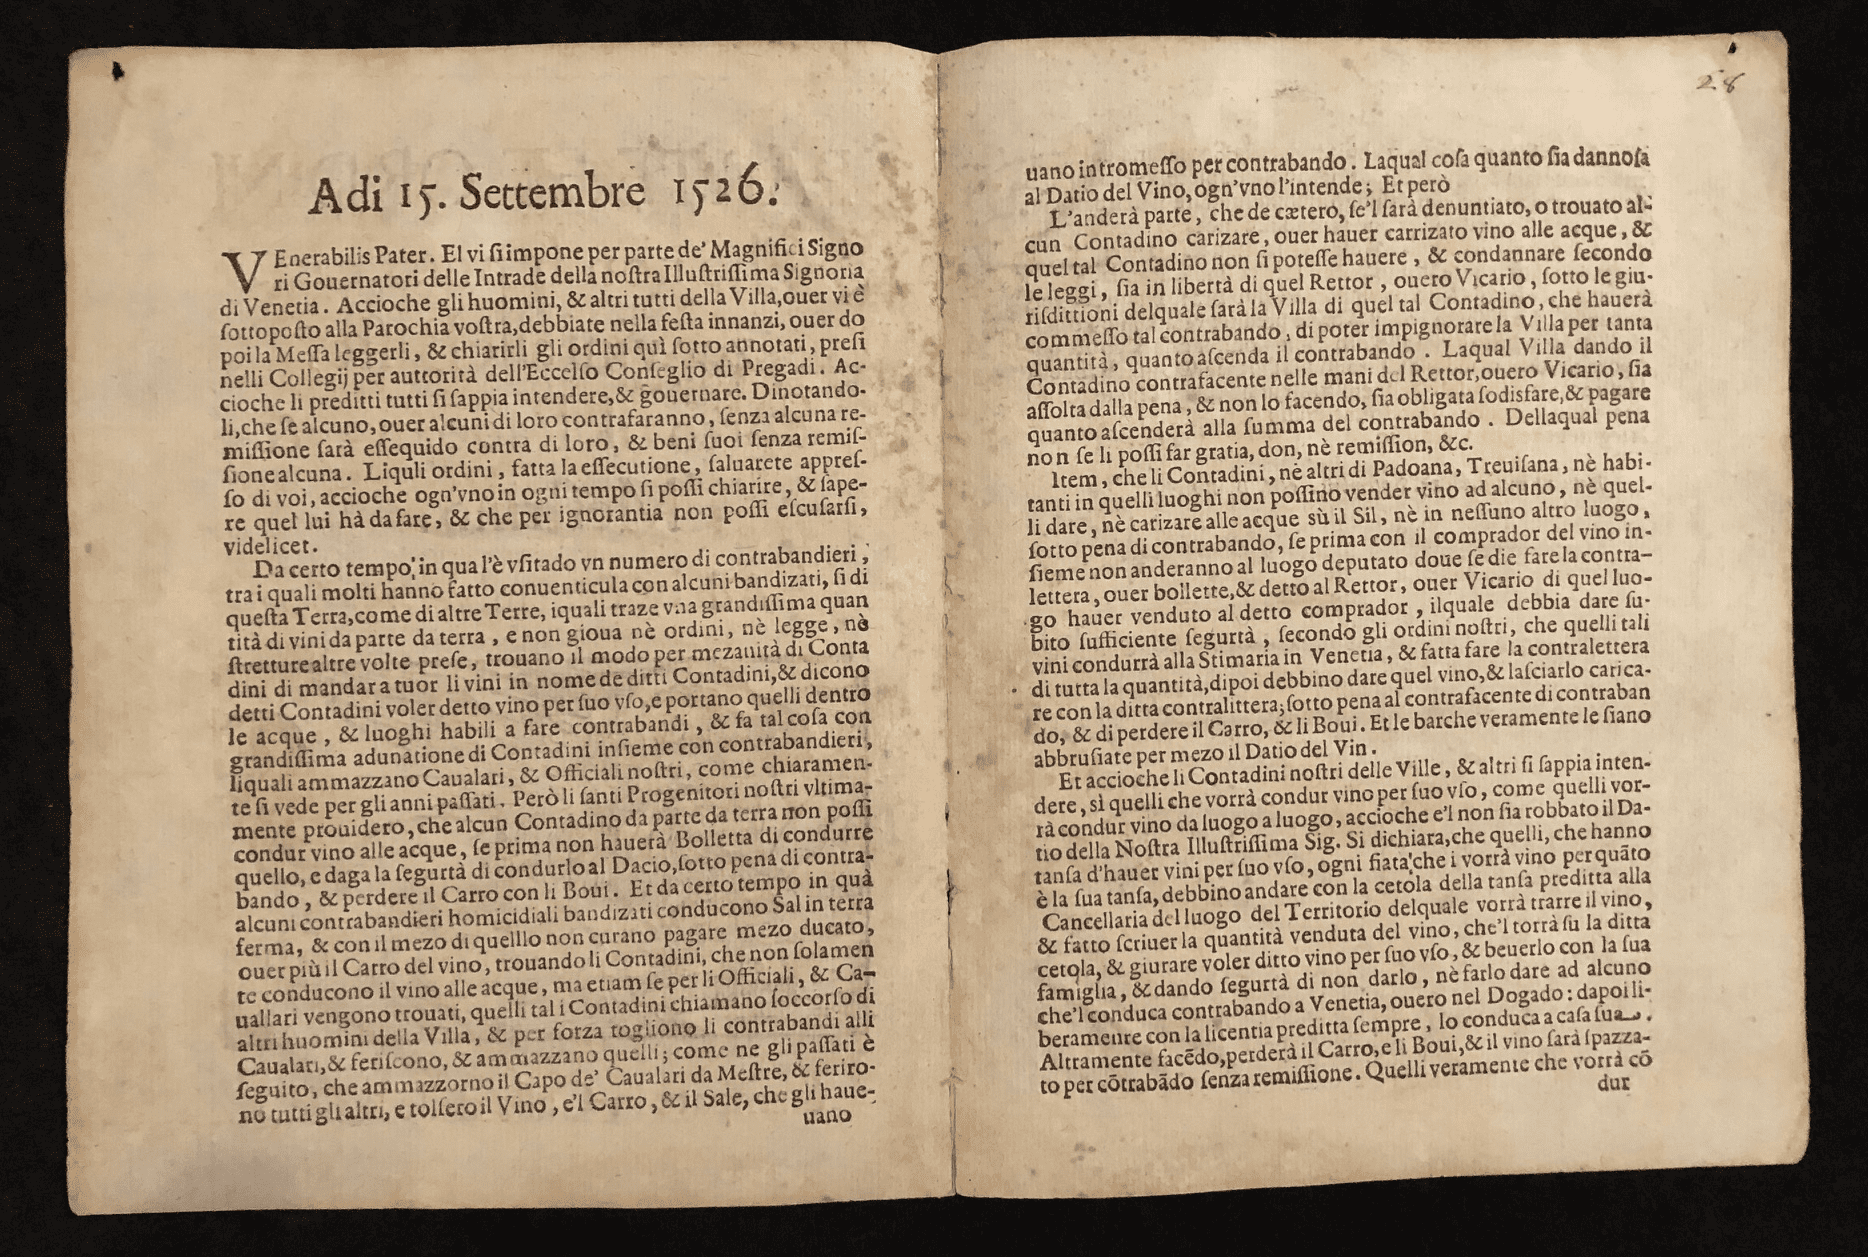 Parte ed Ordini 2 - Text of an order dictating how wine for sale must be transported through Italy in the early 16th century